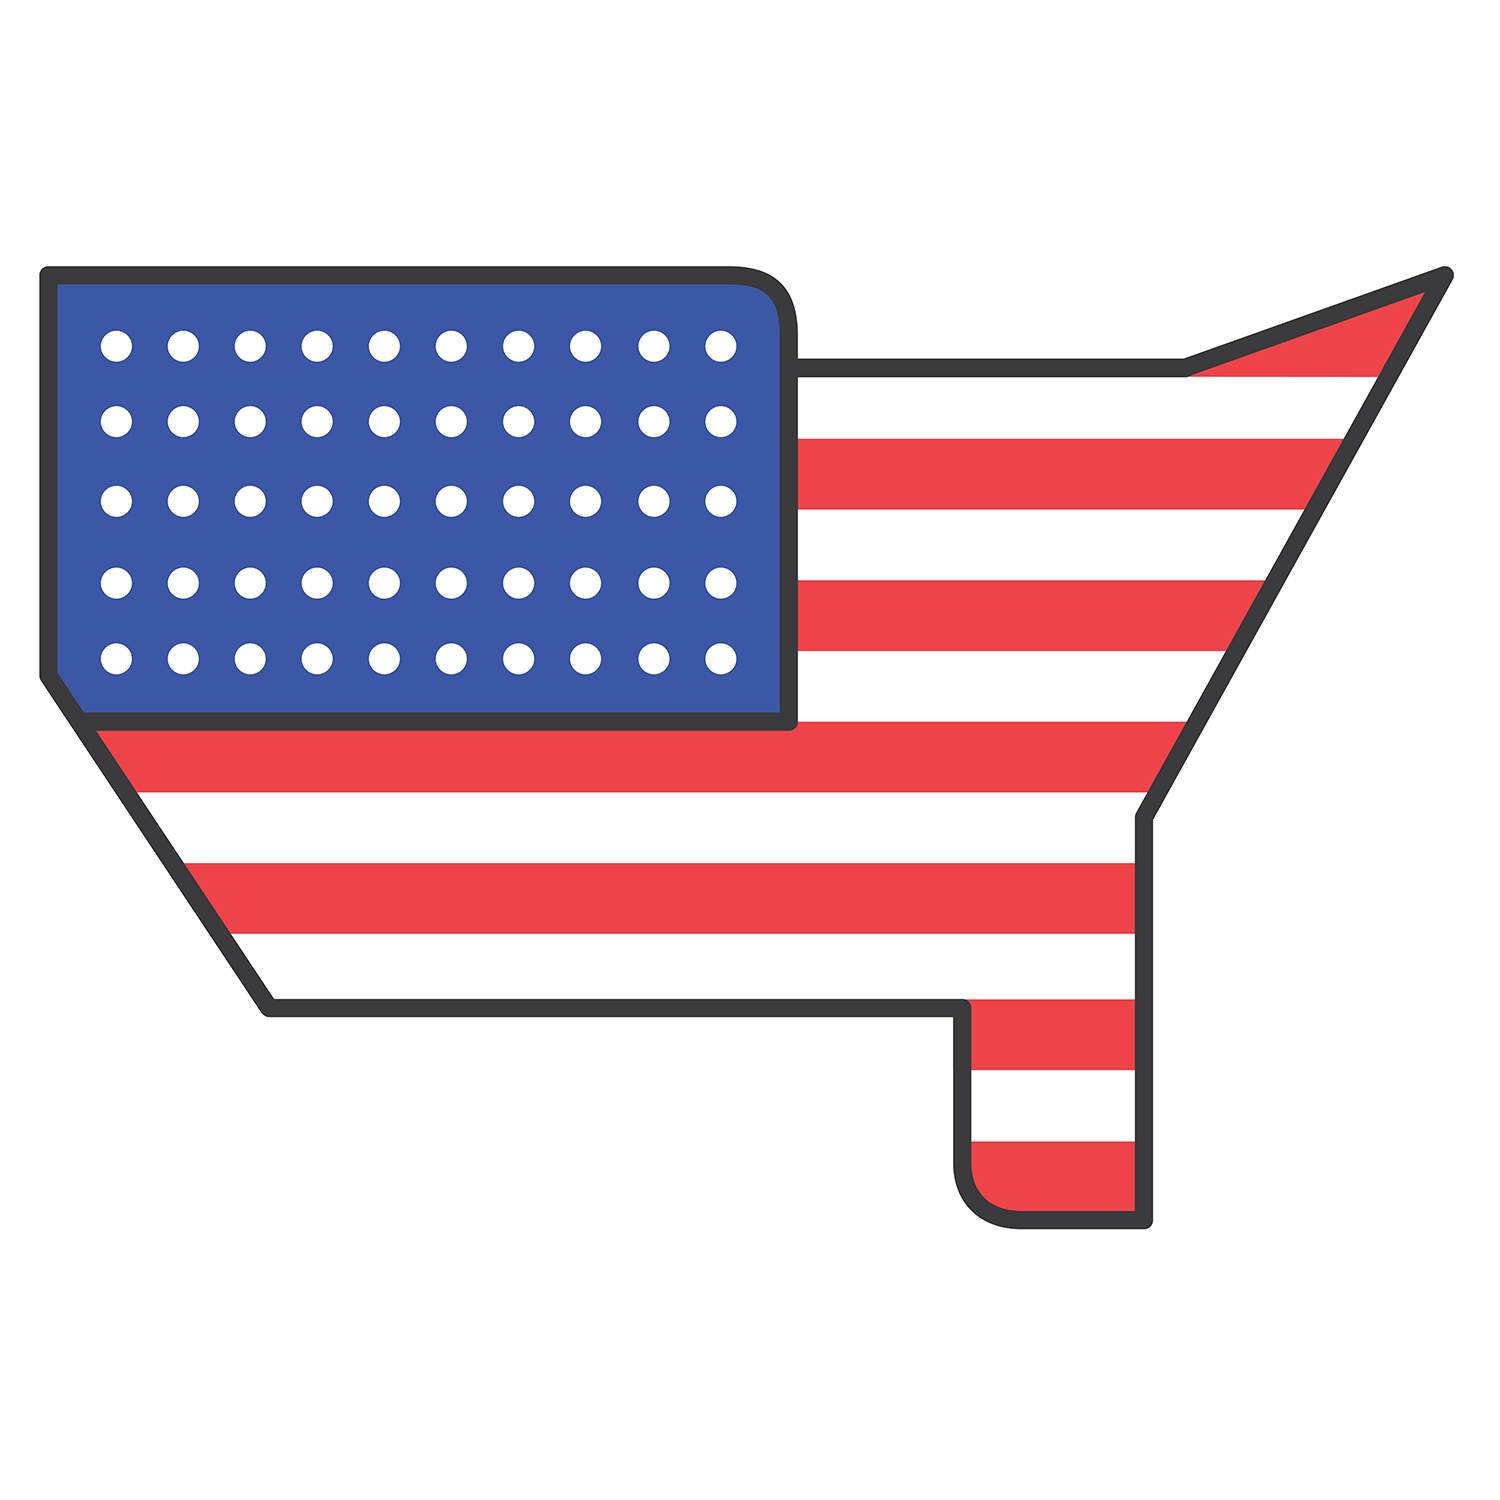 smaller flag icon krft.png